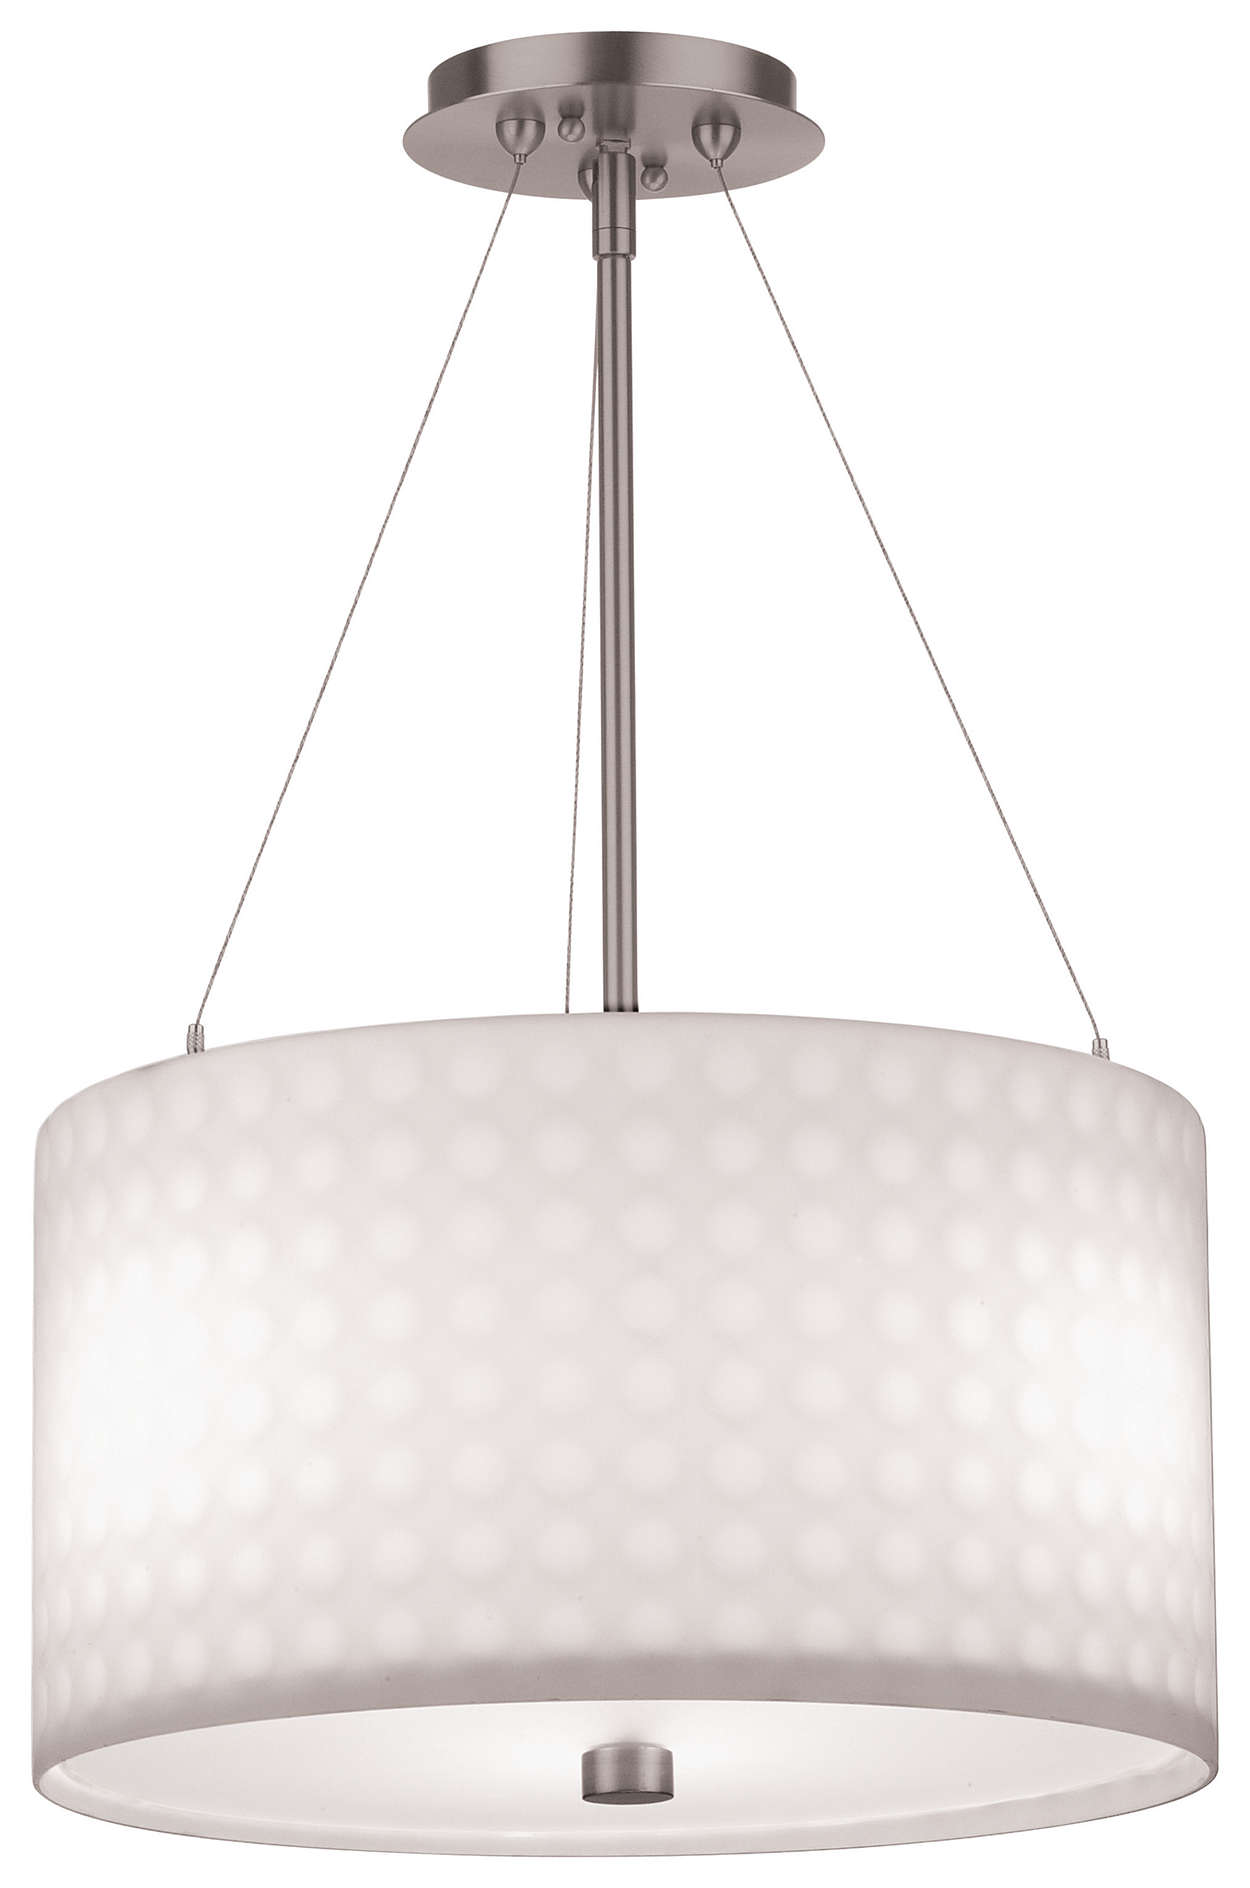 Fore 3-light Pendant in Satin Nickel finish